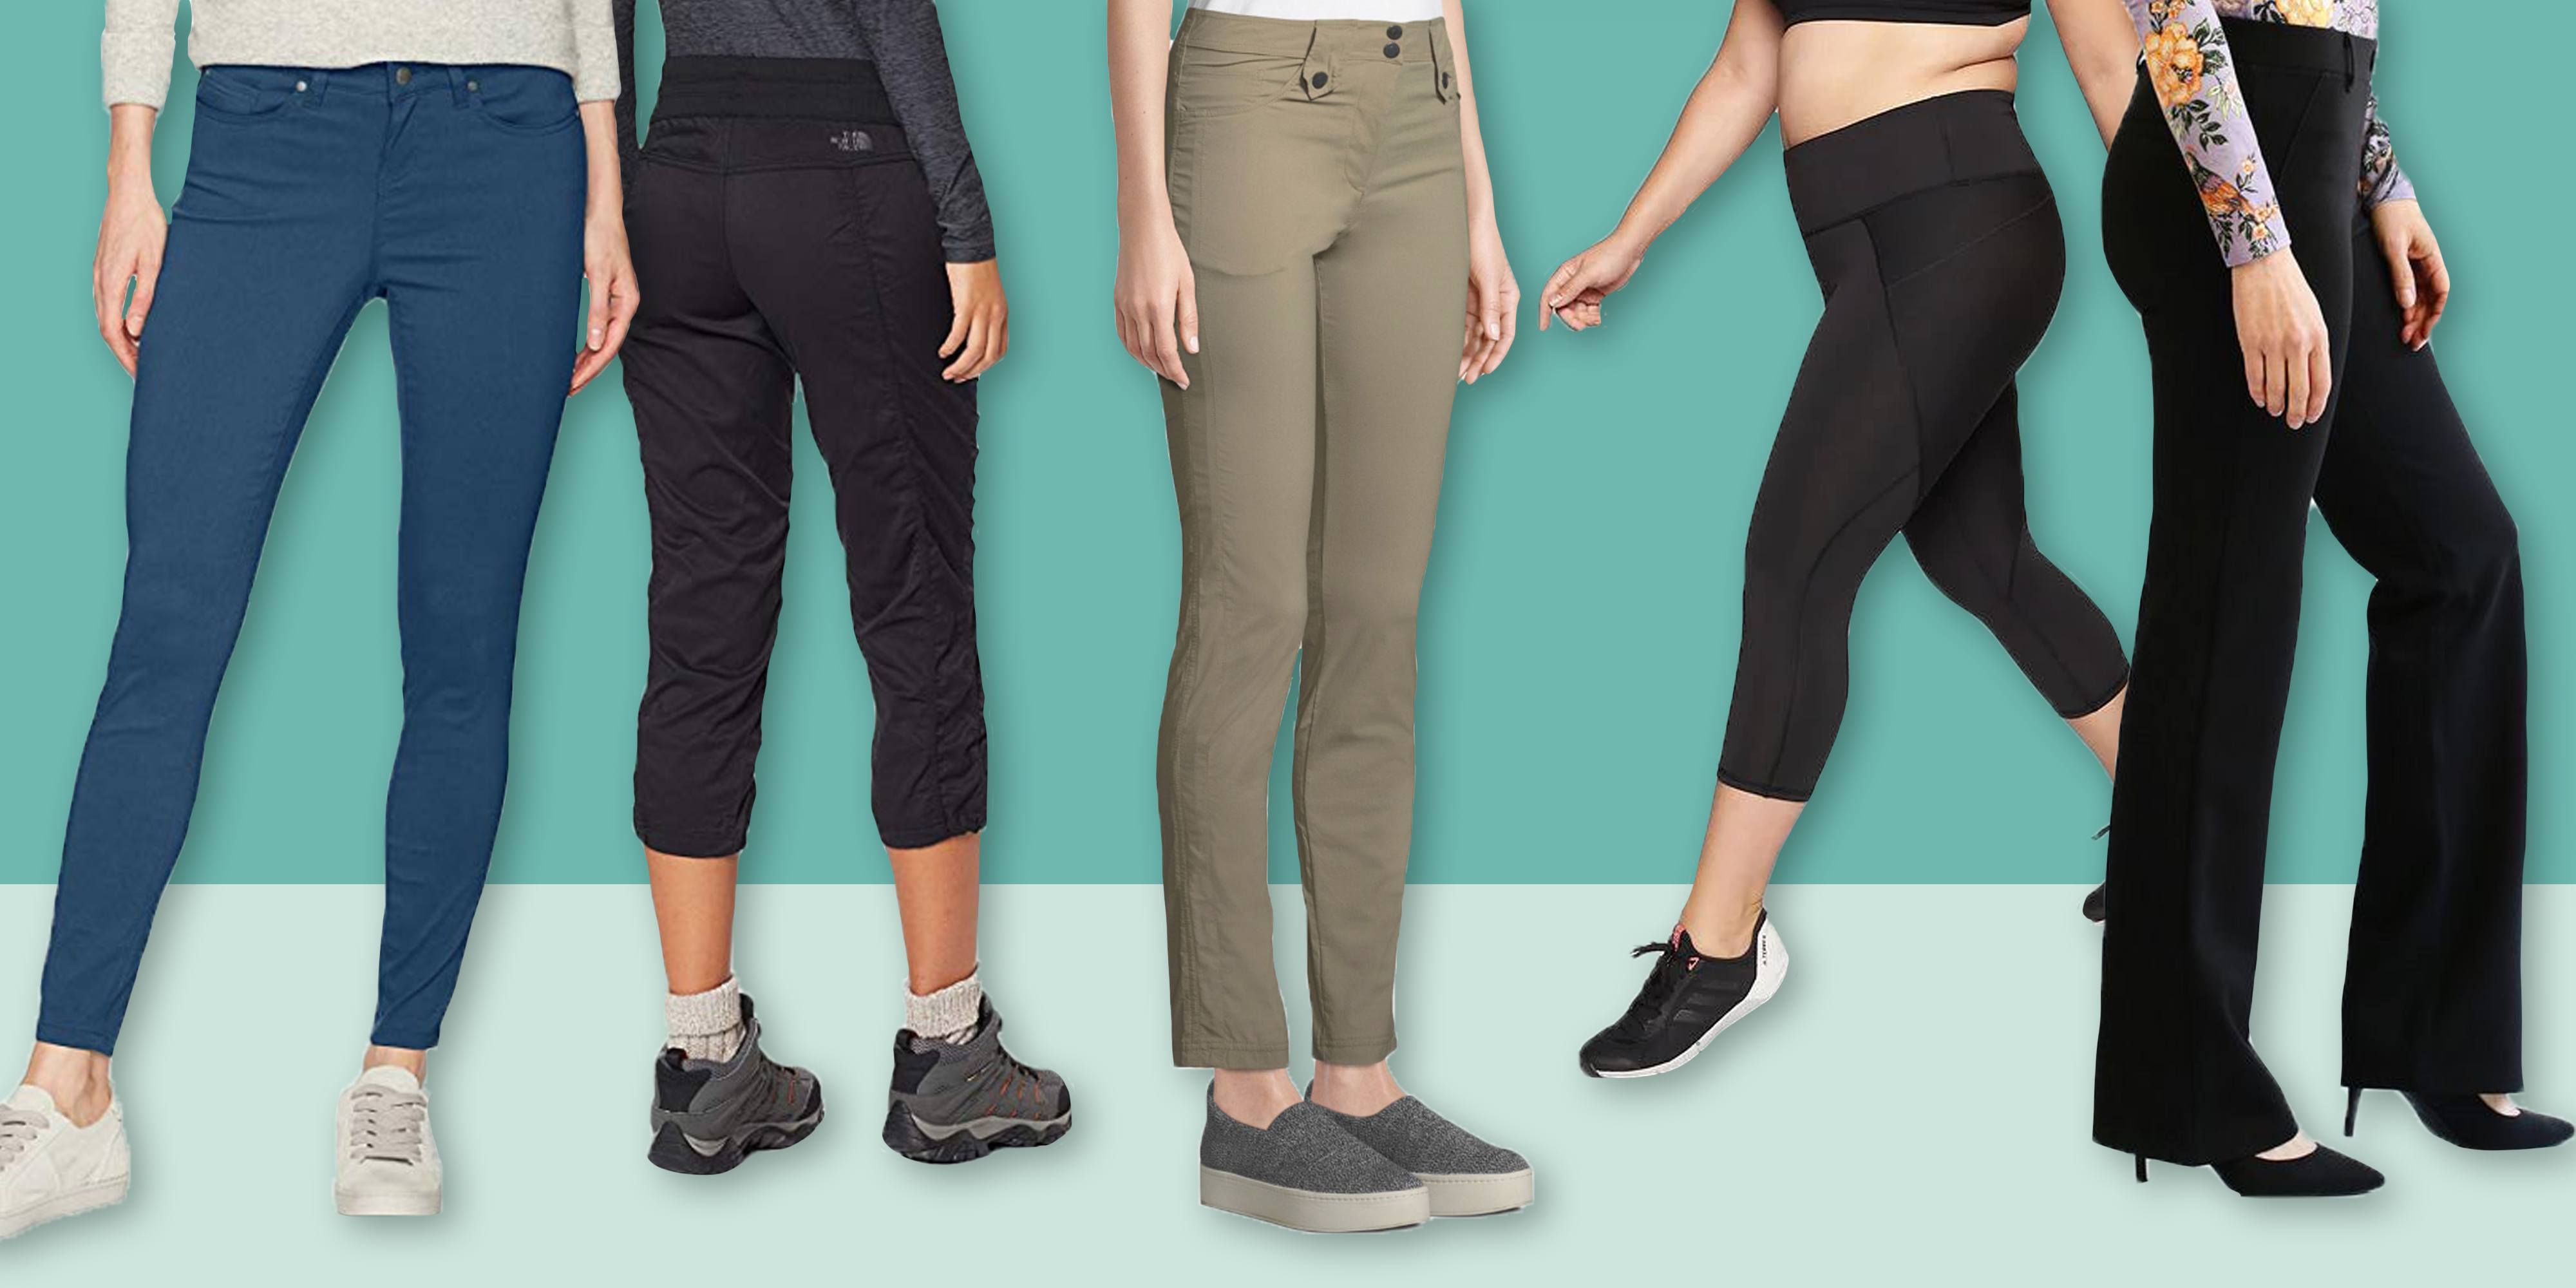 61635aaadf50d Best Travel Pants for Women 2019 - Comfy, Chic Pants for Travel